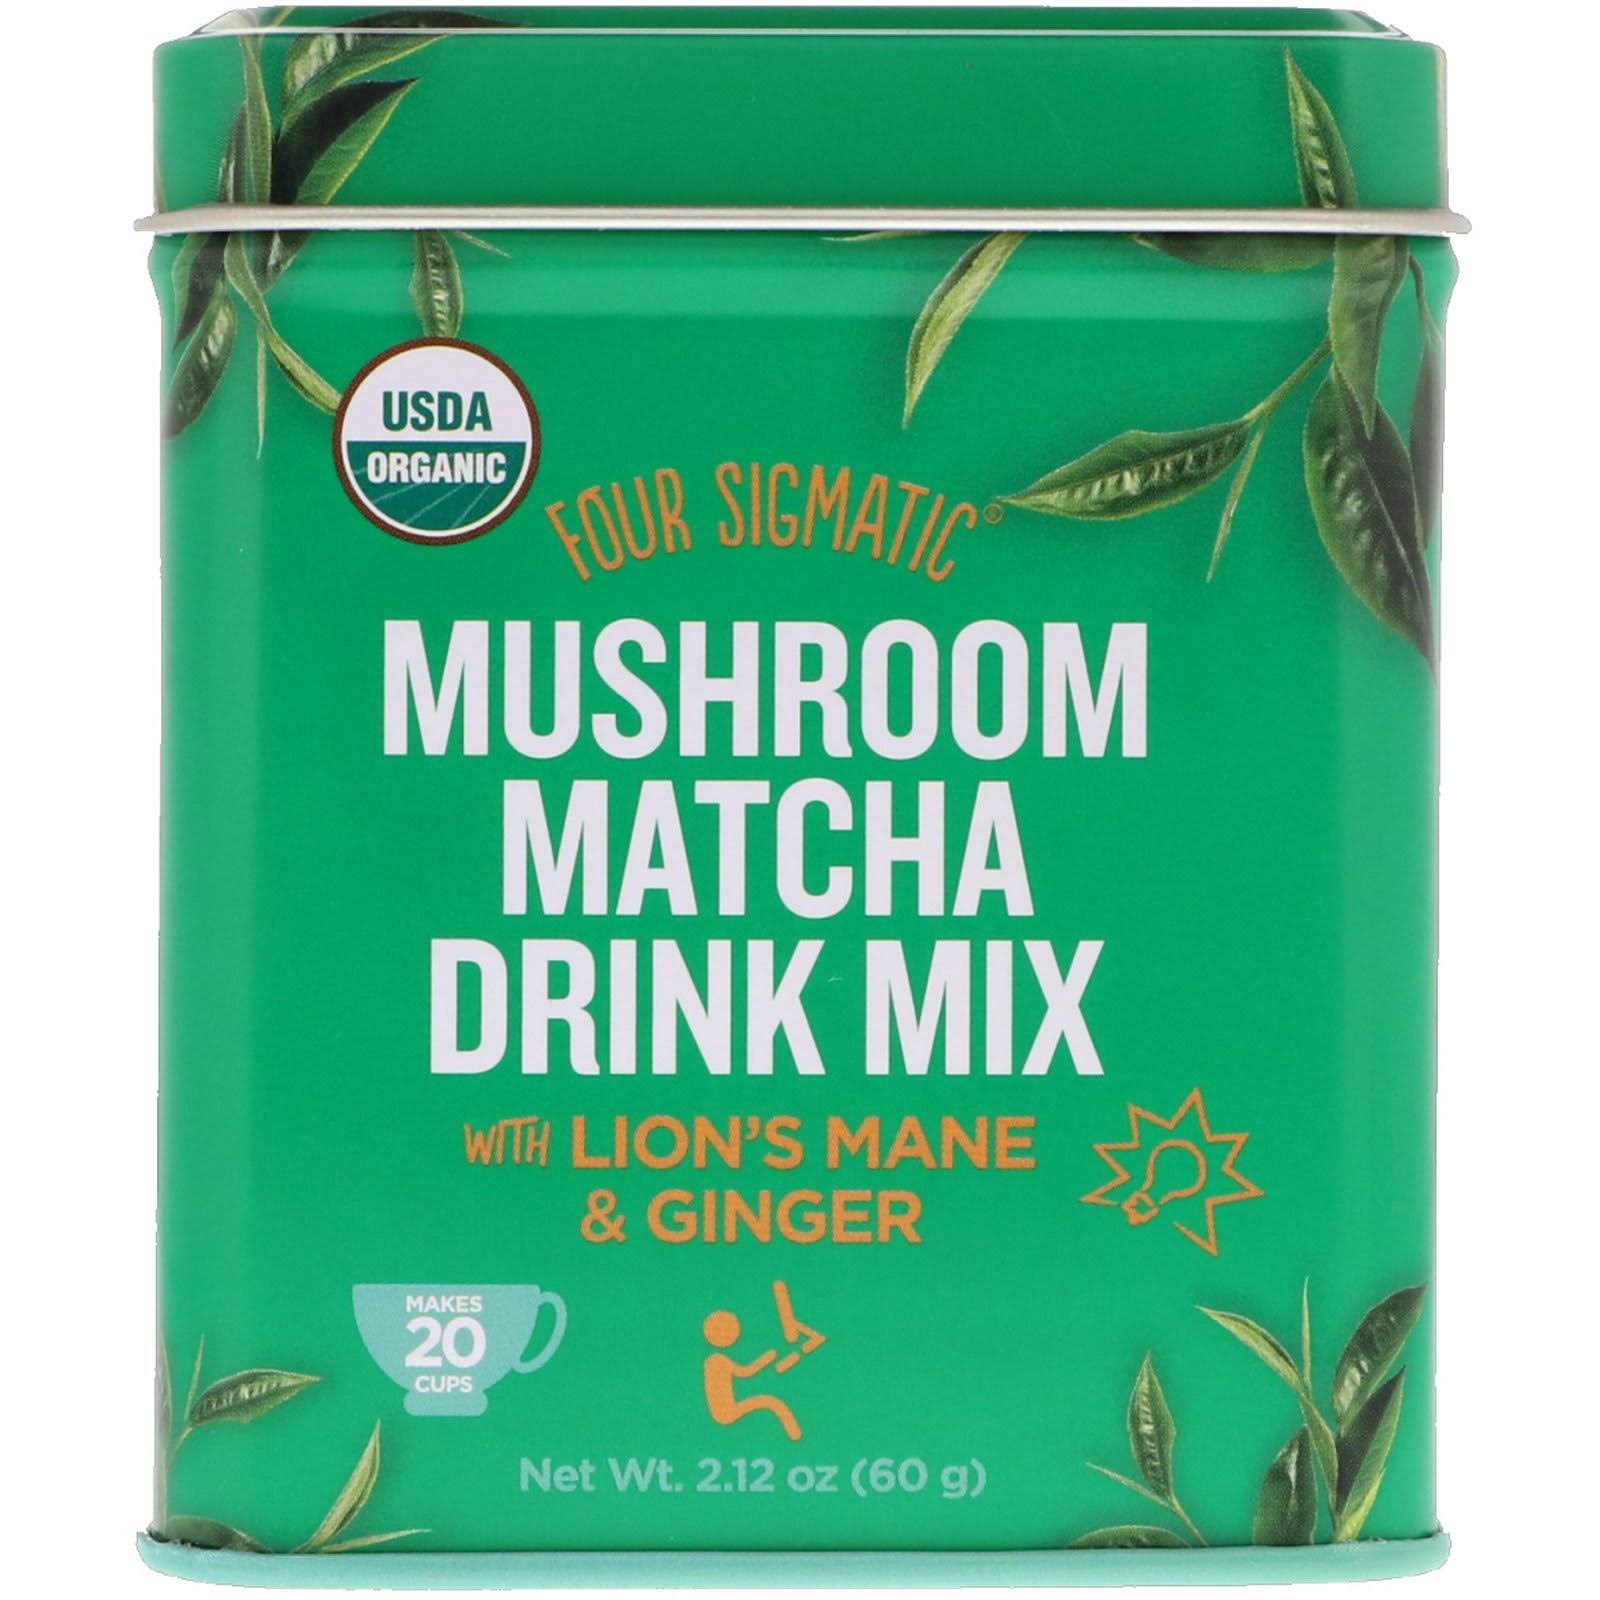 Four Sigmatic Organic Mushroom Matcha Drink Mix - with Lion's Mane and Ginger, 2.12oz